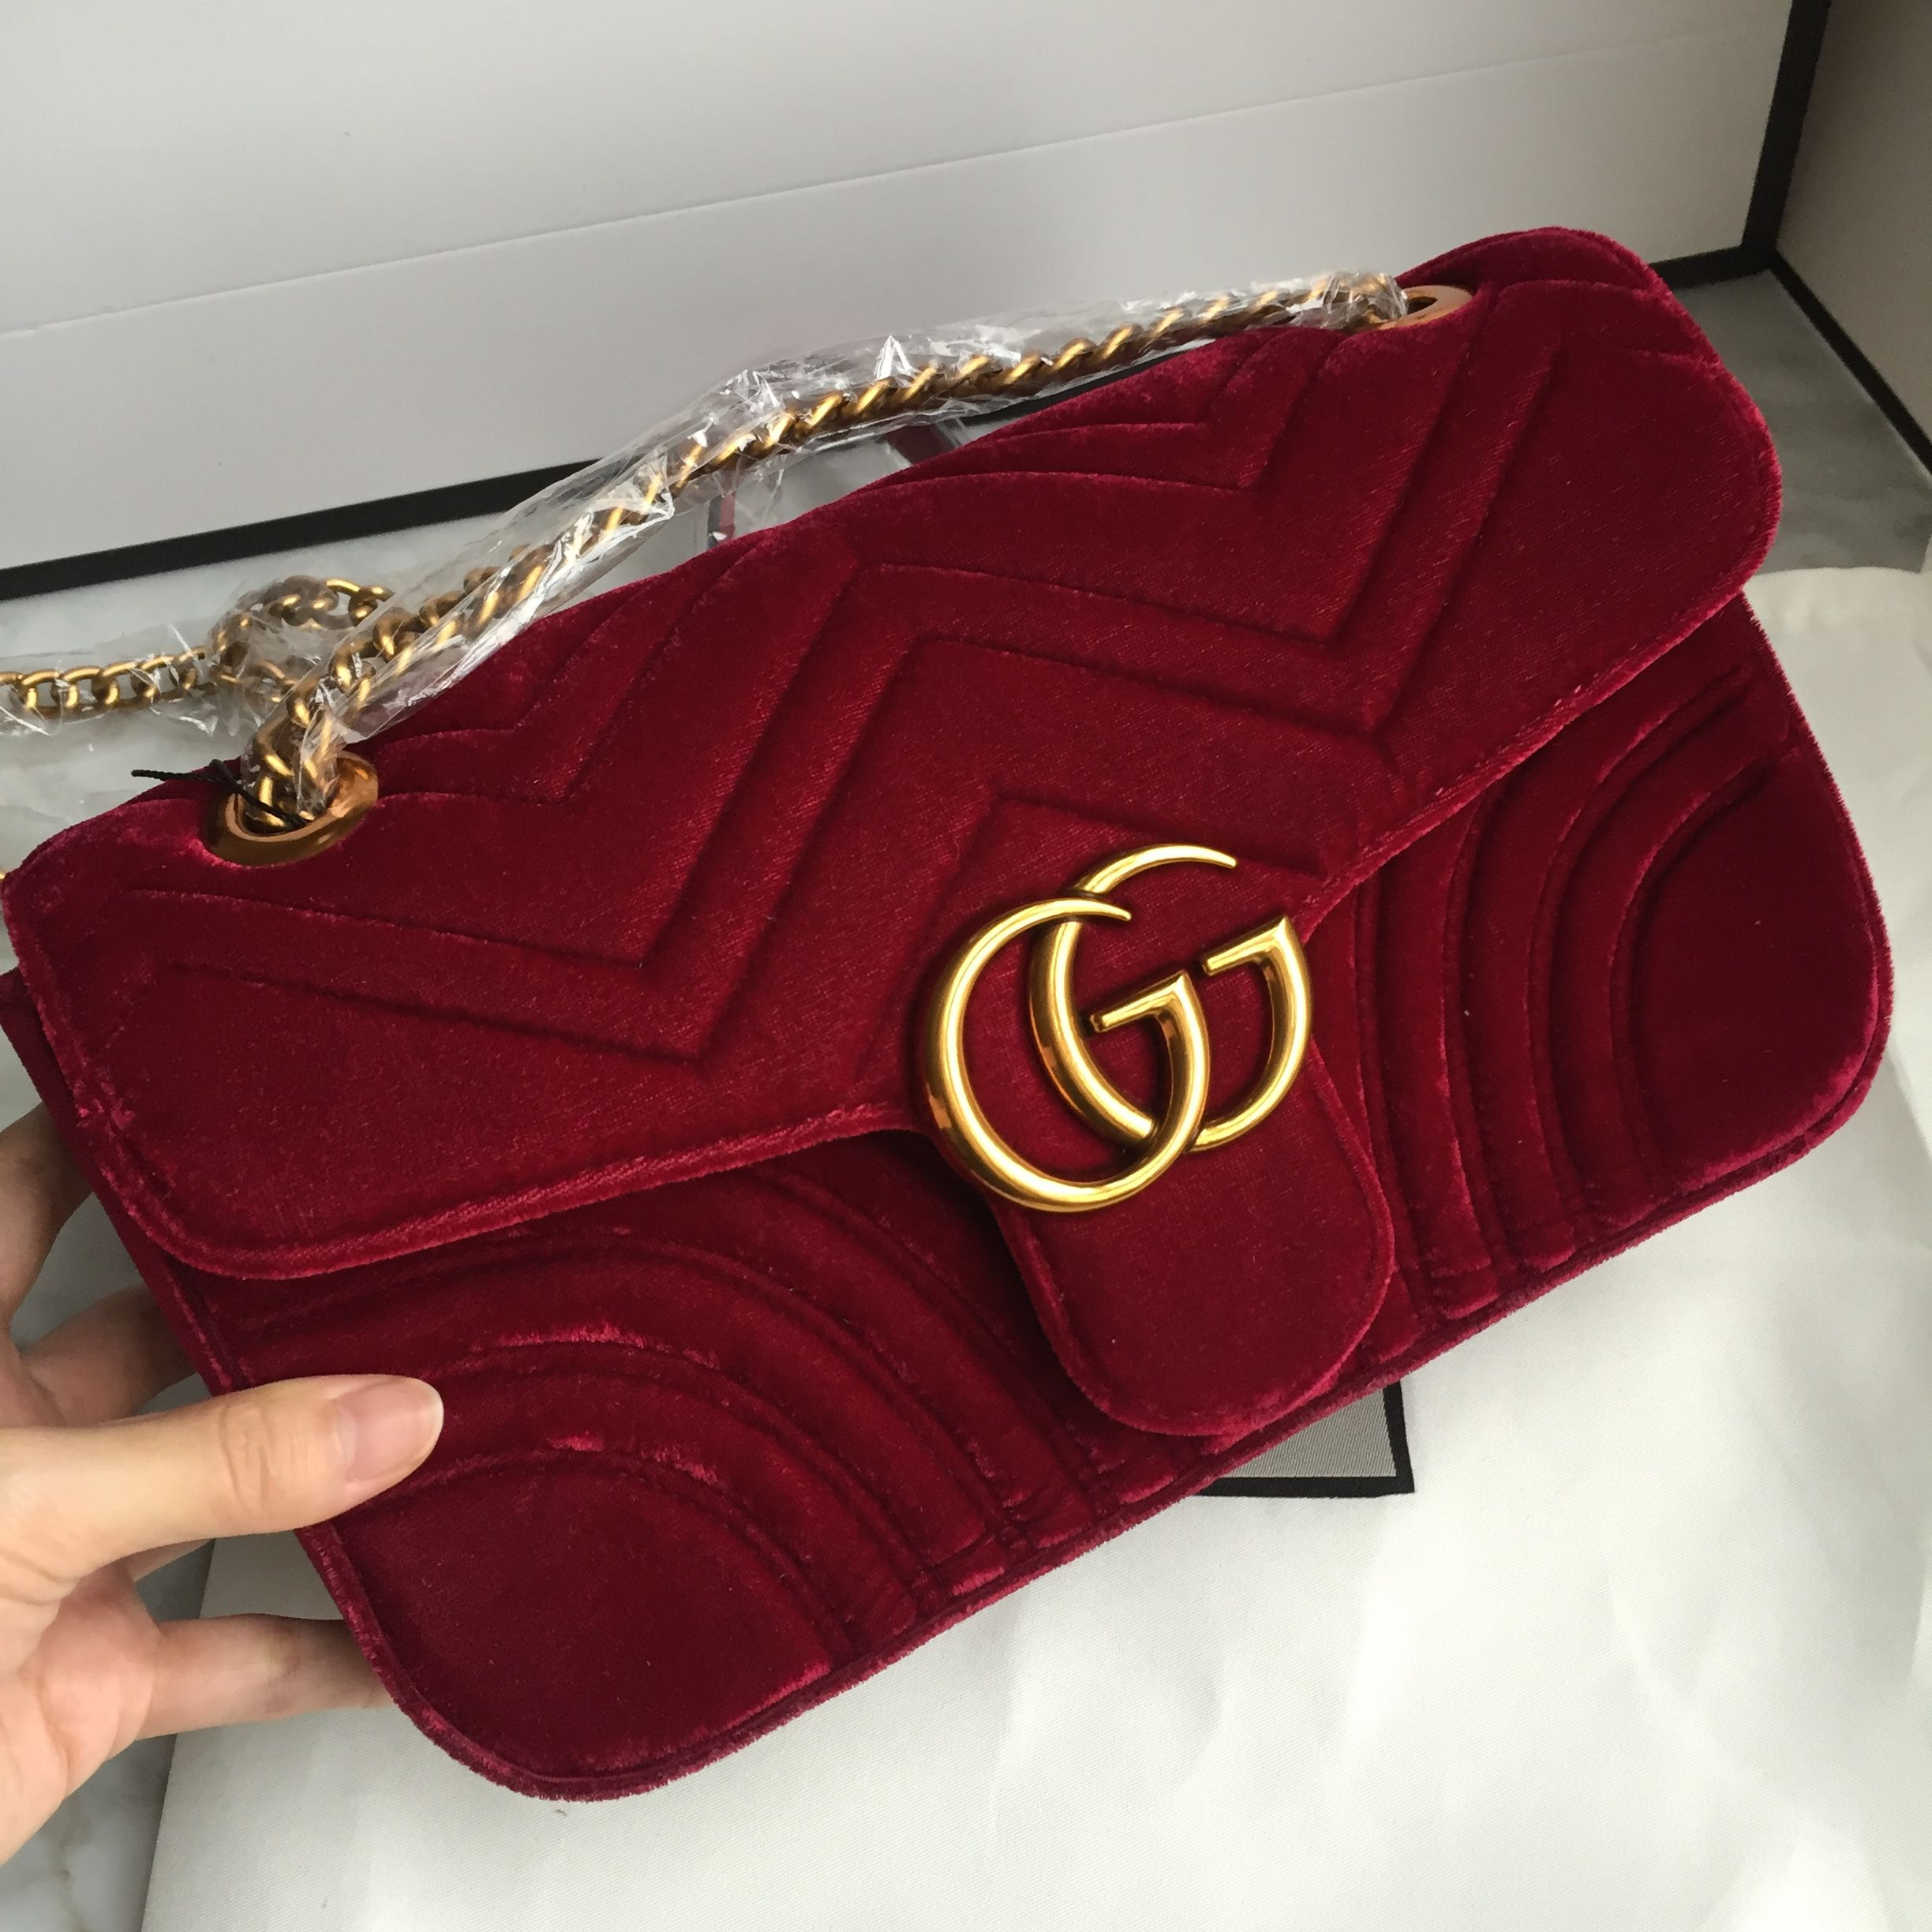 2758e586479c Gucci marmont chain bag velvet wine red color | My Style in 2019 ...